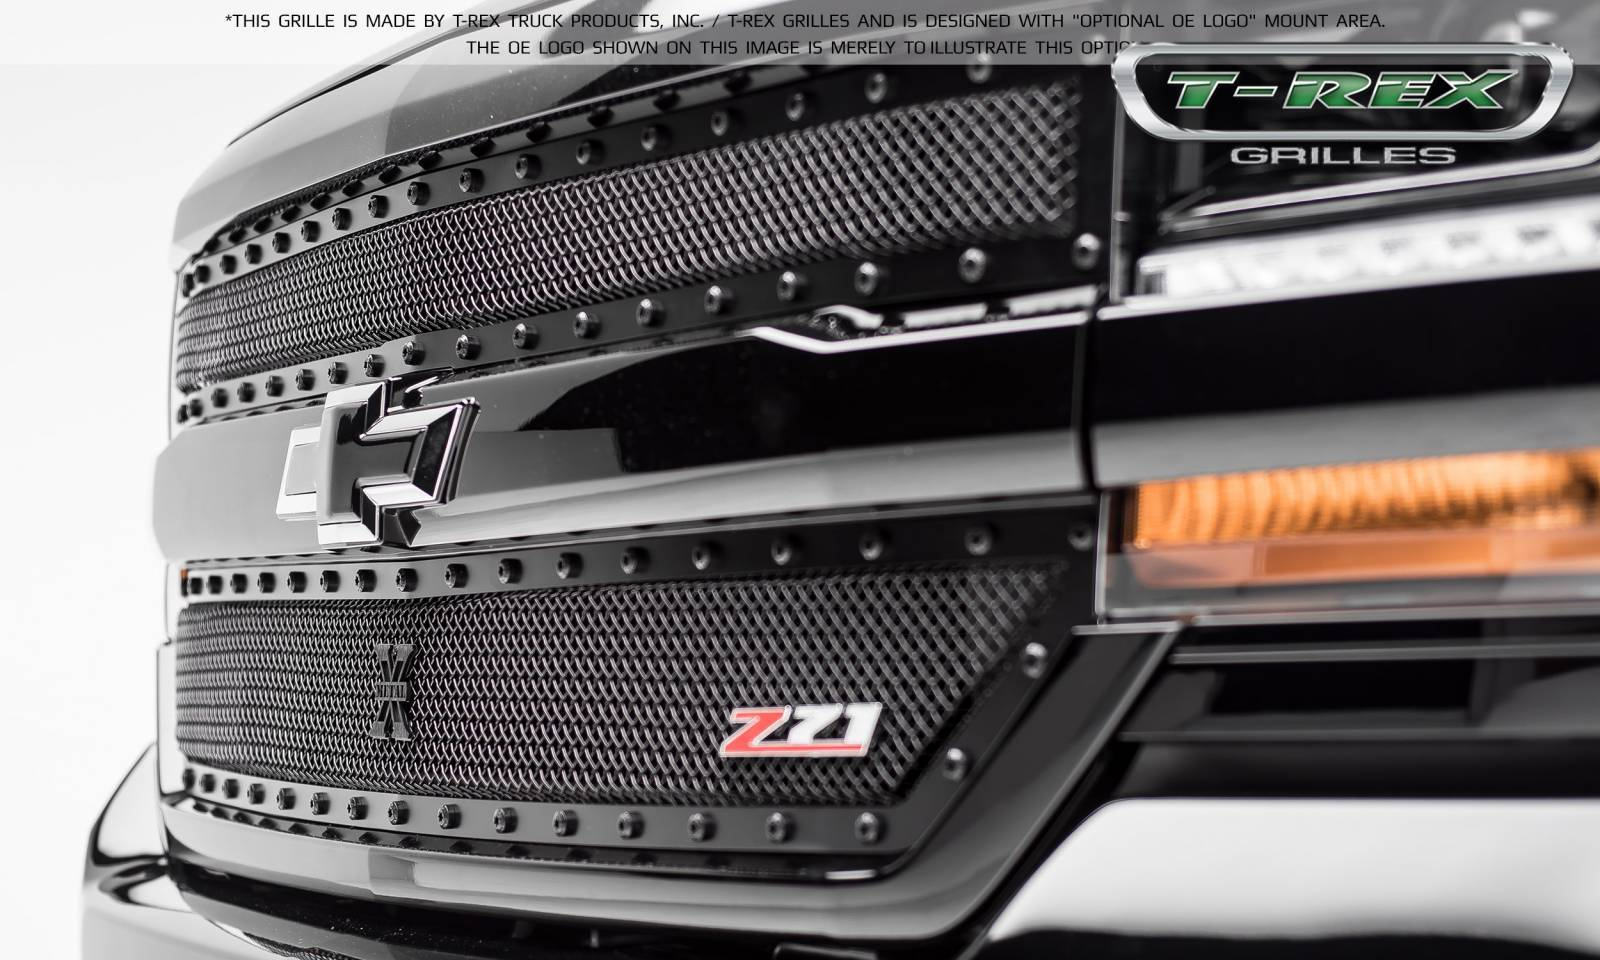 T-REX Grilles - Chevrolet Silverado 1500 X-METAL Series, STEALTH METAL - Blacked Out All Black, 2 Pc Main Grille Overlay - Fits Z71 Only - Pt # 6711241-BR